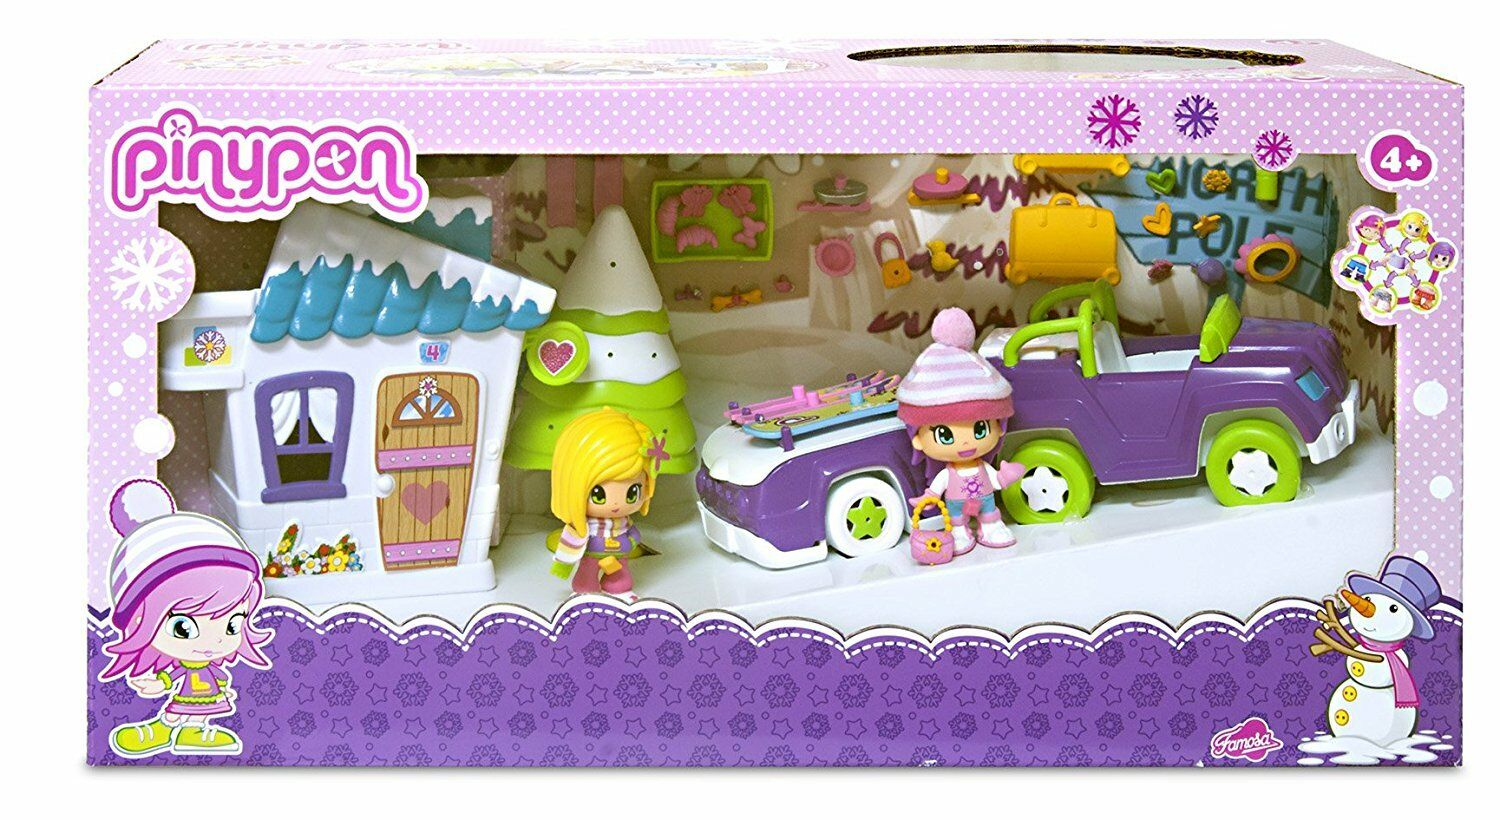 Famosa 700010550 - Pinypon Casita de la nieve - New and sealed